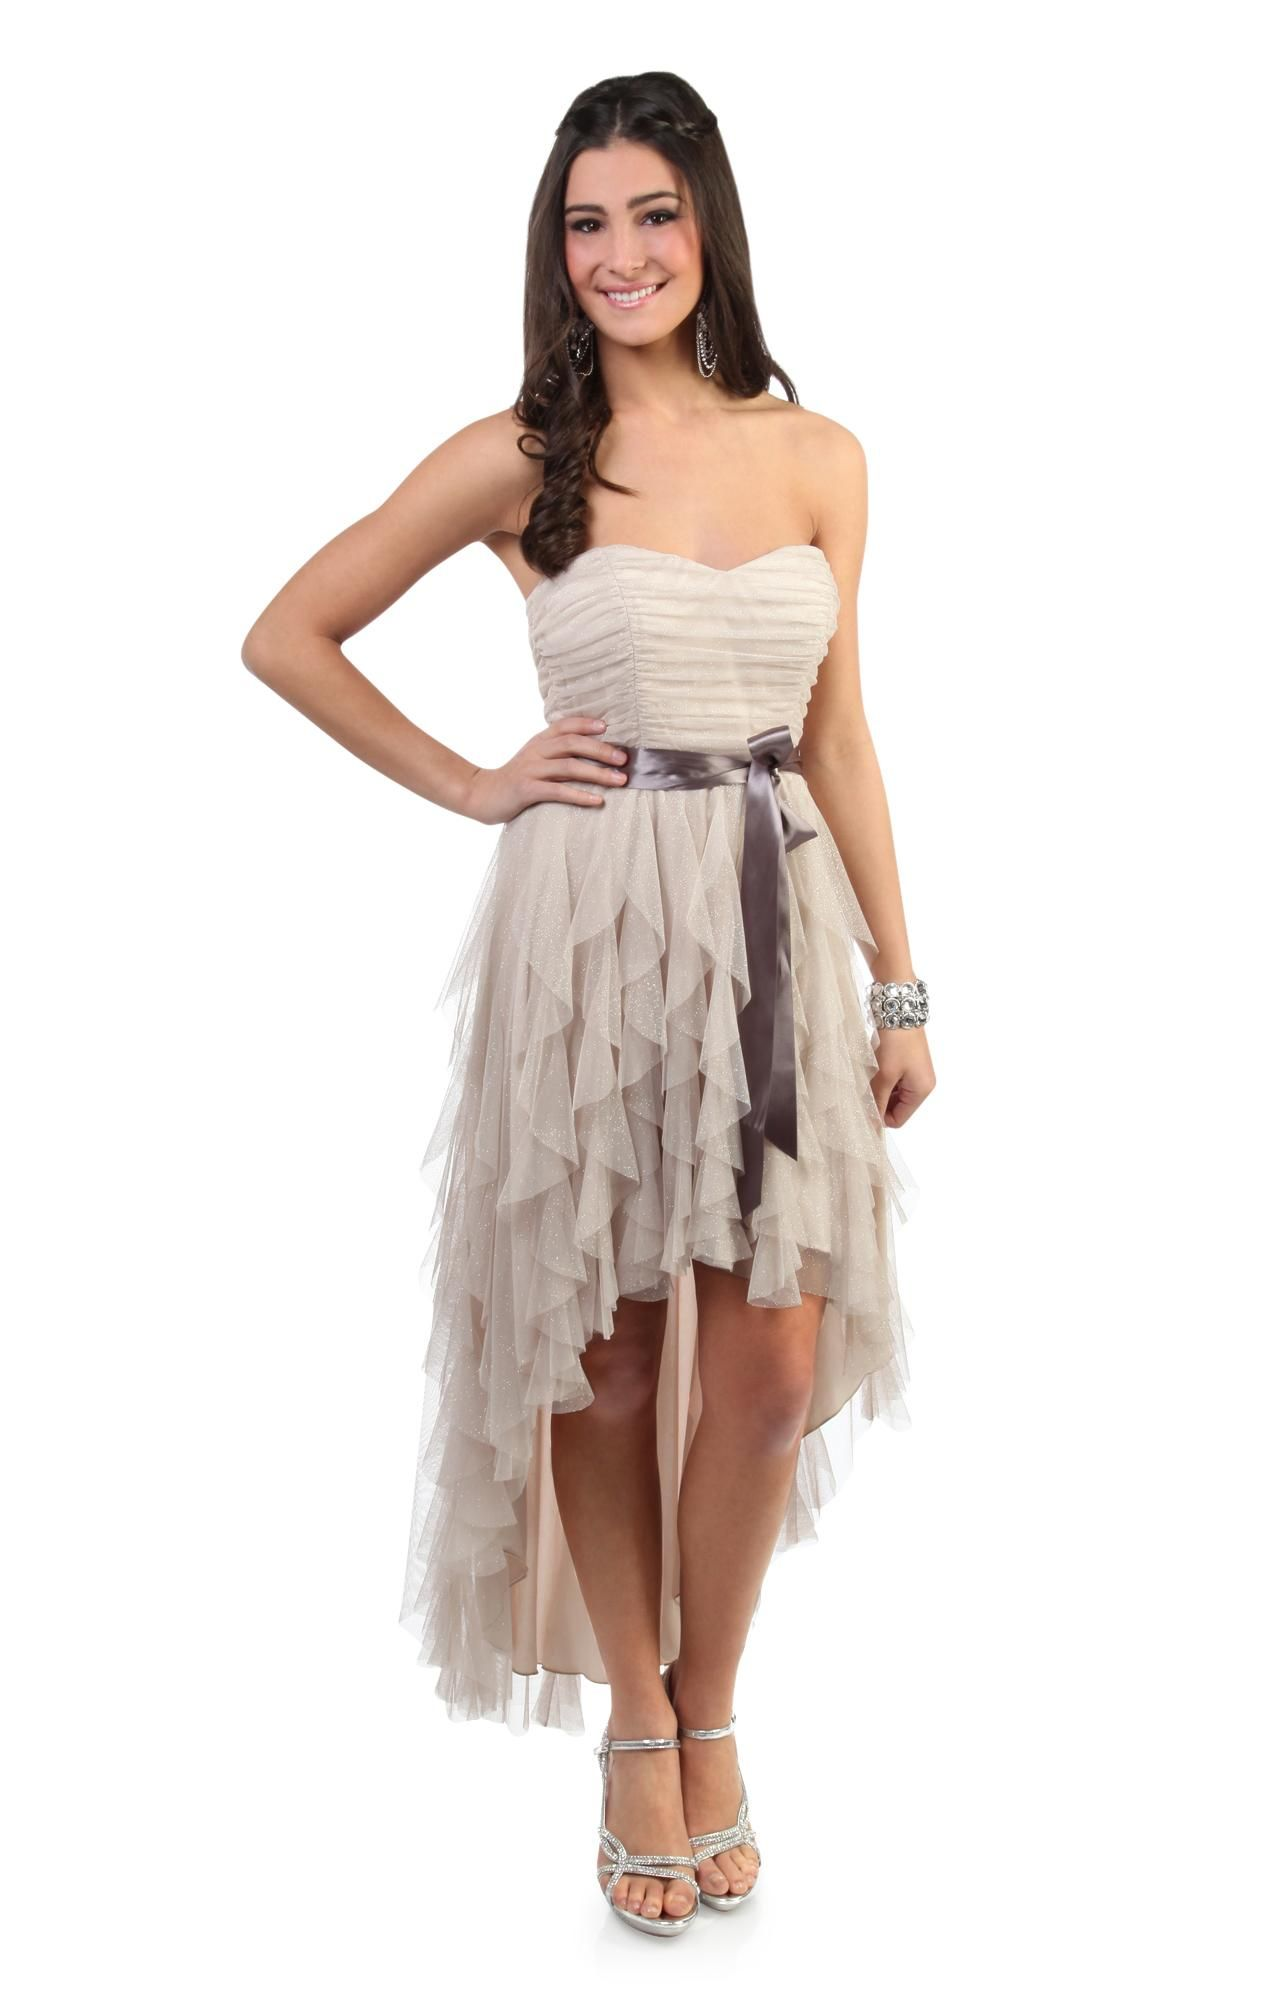 Glitter ruffle high low prom dress with side waist tie would look